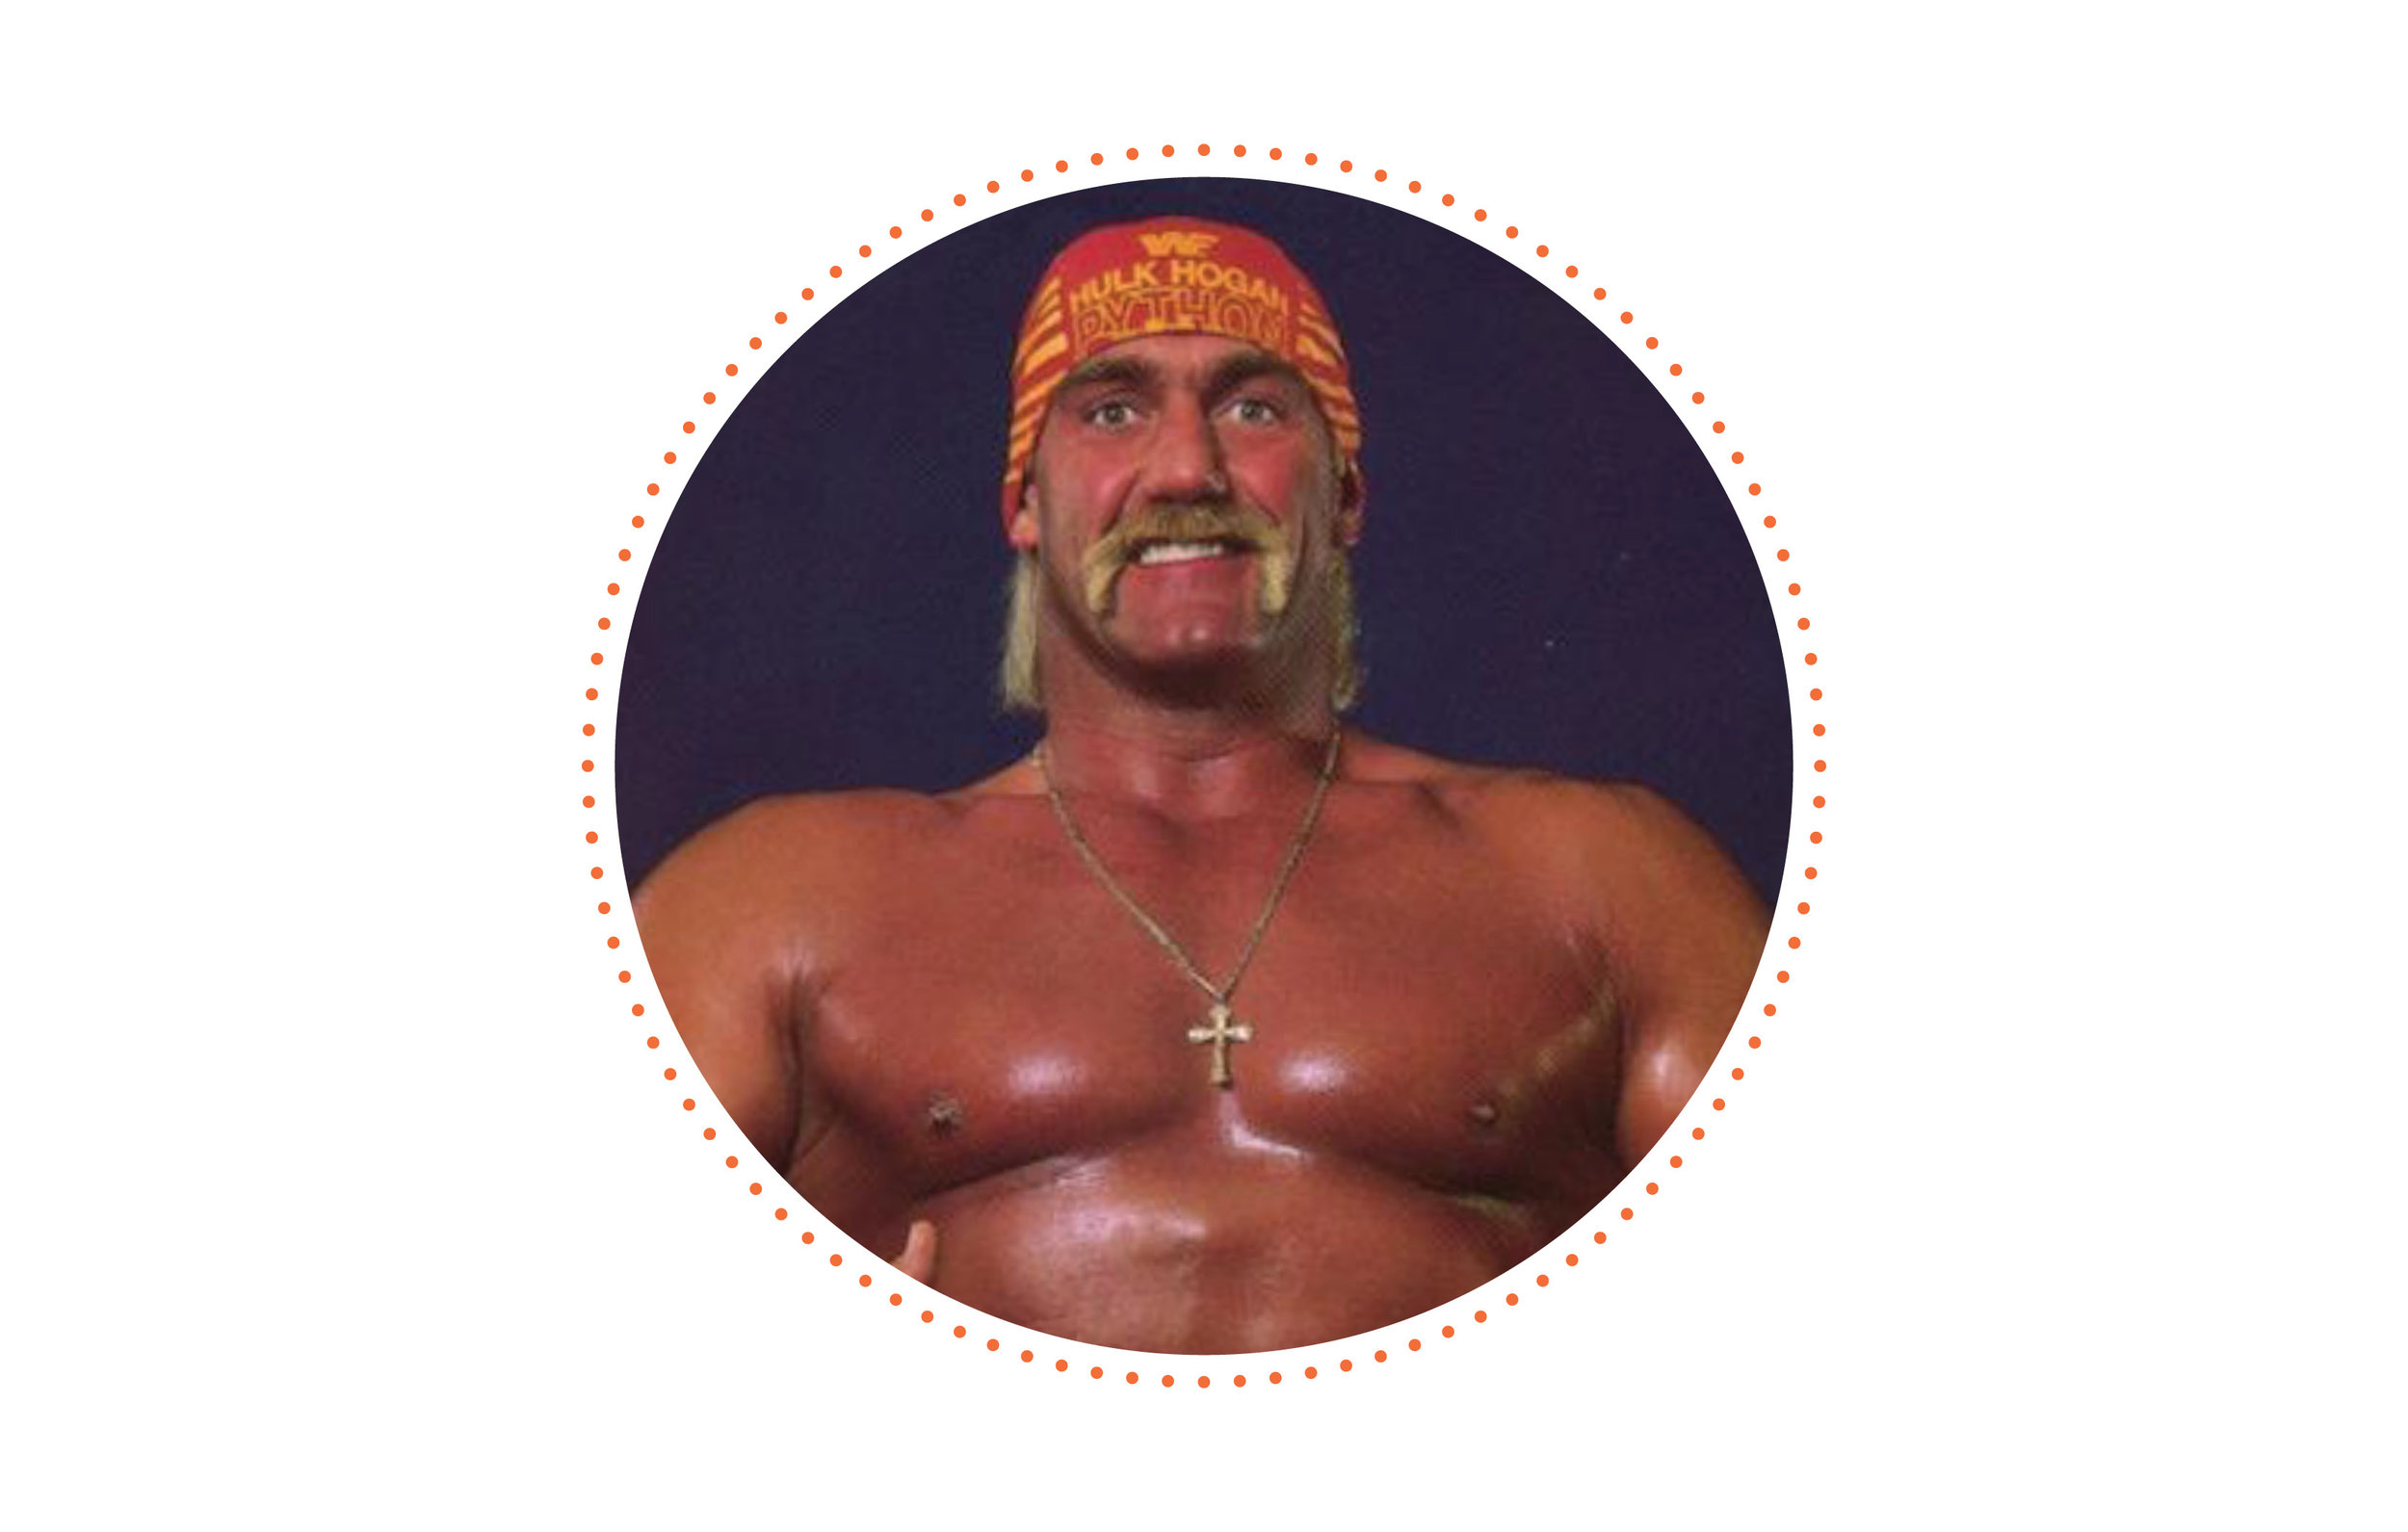 Brush with celebrity? - Met Hulk Hogan as a kid at a restaurant in Florida. (His hand was bigger than my entire body)